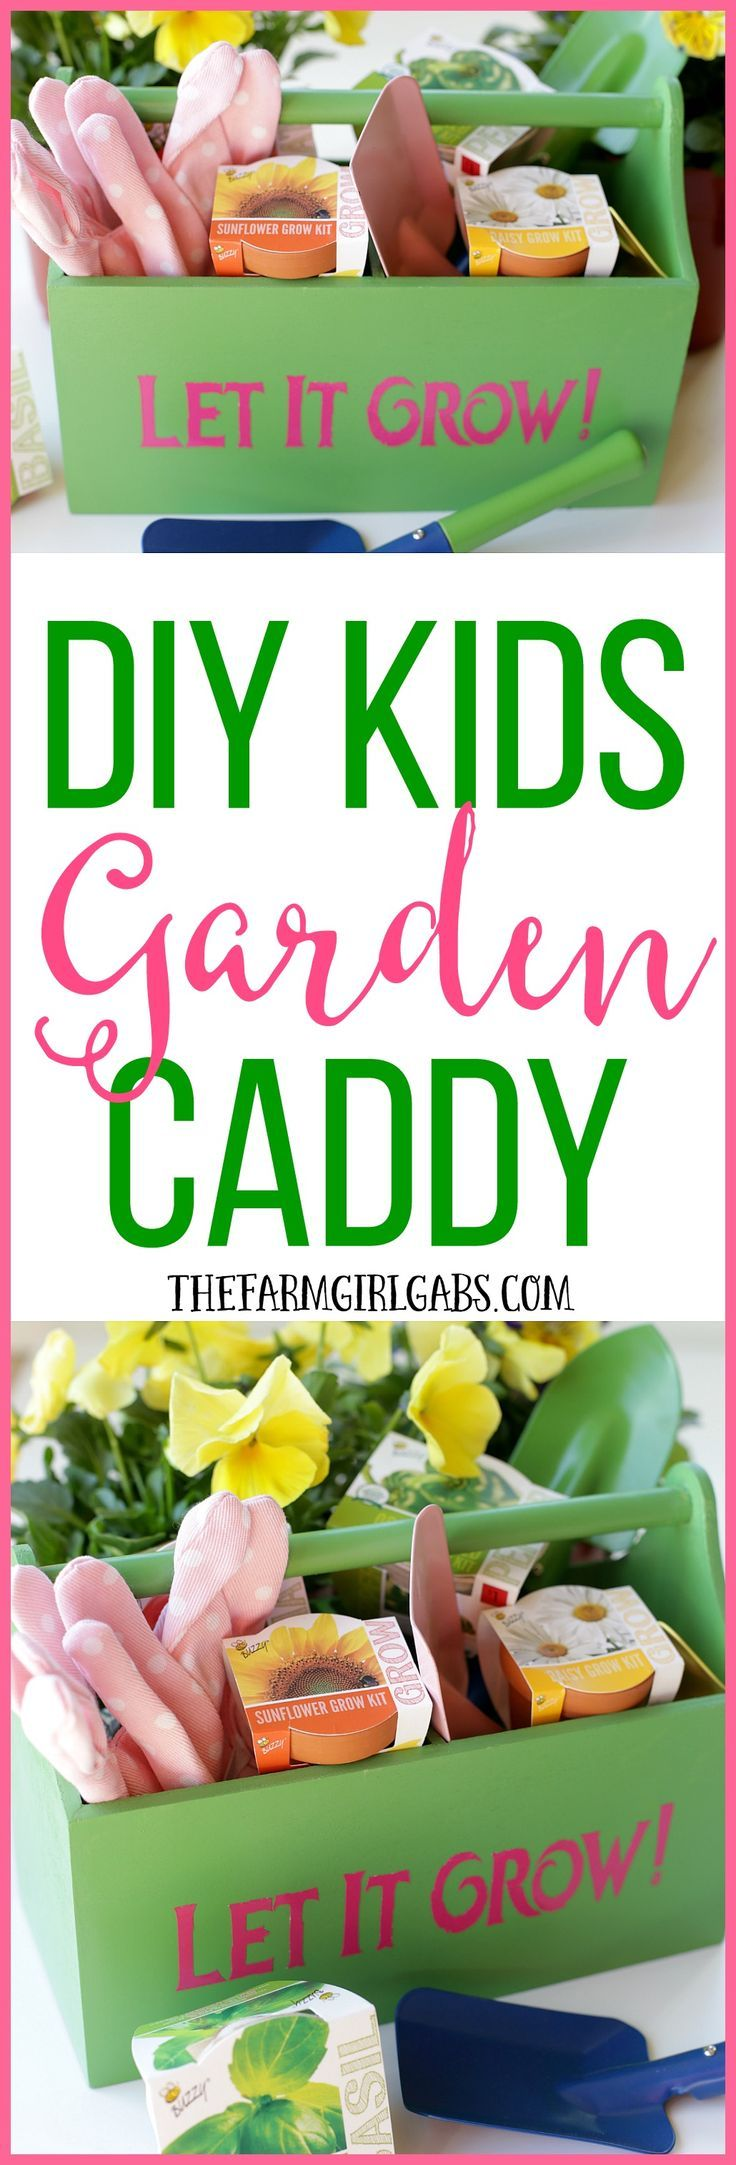 "Your kids will really ""dig"" this DIY Kids Gardening Caddy. It's perfect for carrying their gardening tools. It makes a great gift idea."